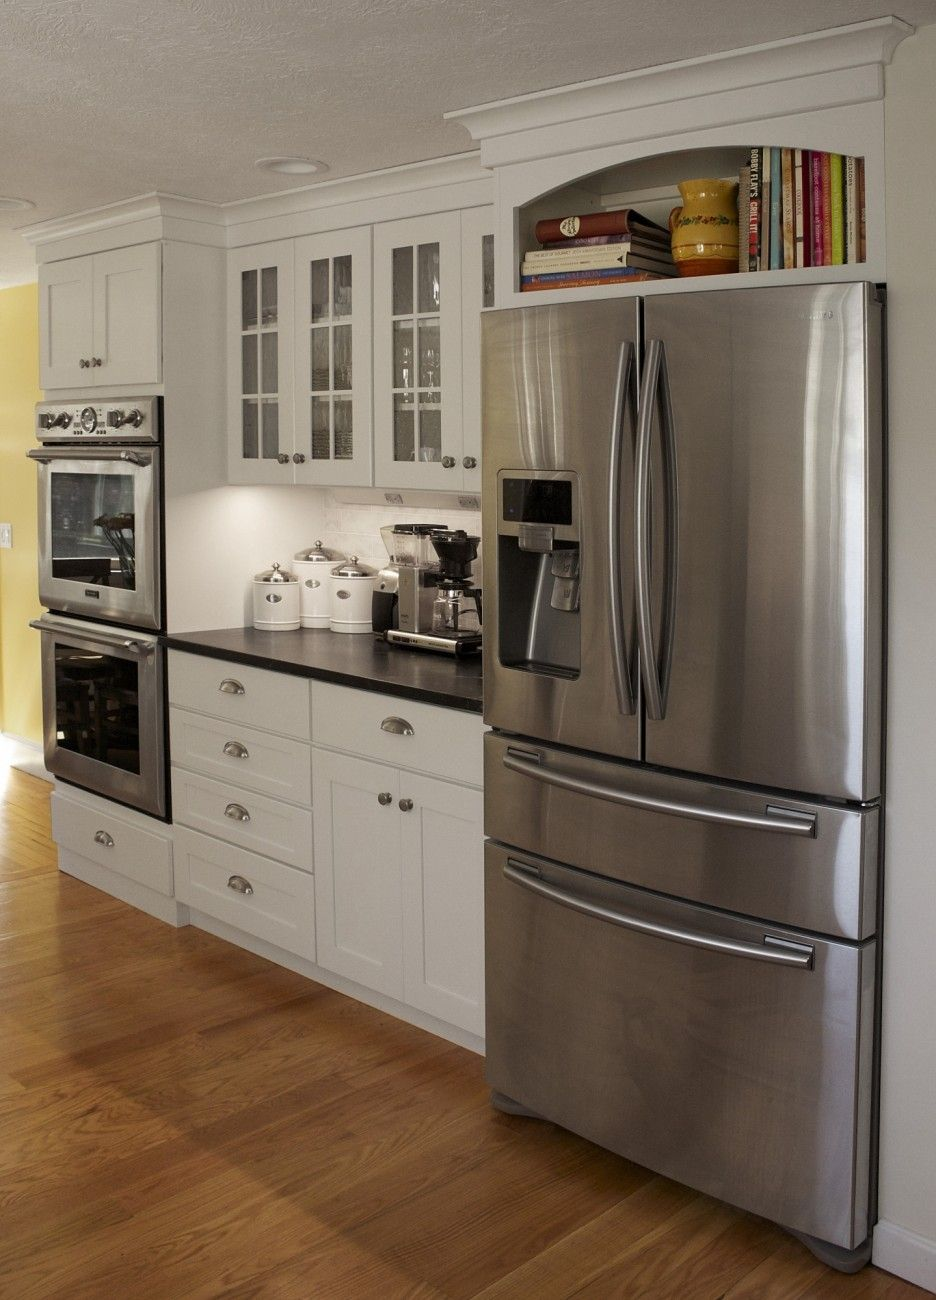 Kitchen Remodel For Small Kitchen Galley Kitchen Remodel For Small Space Fridge Gallery Kitchen